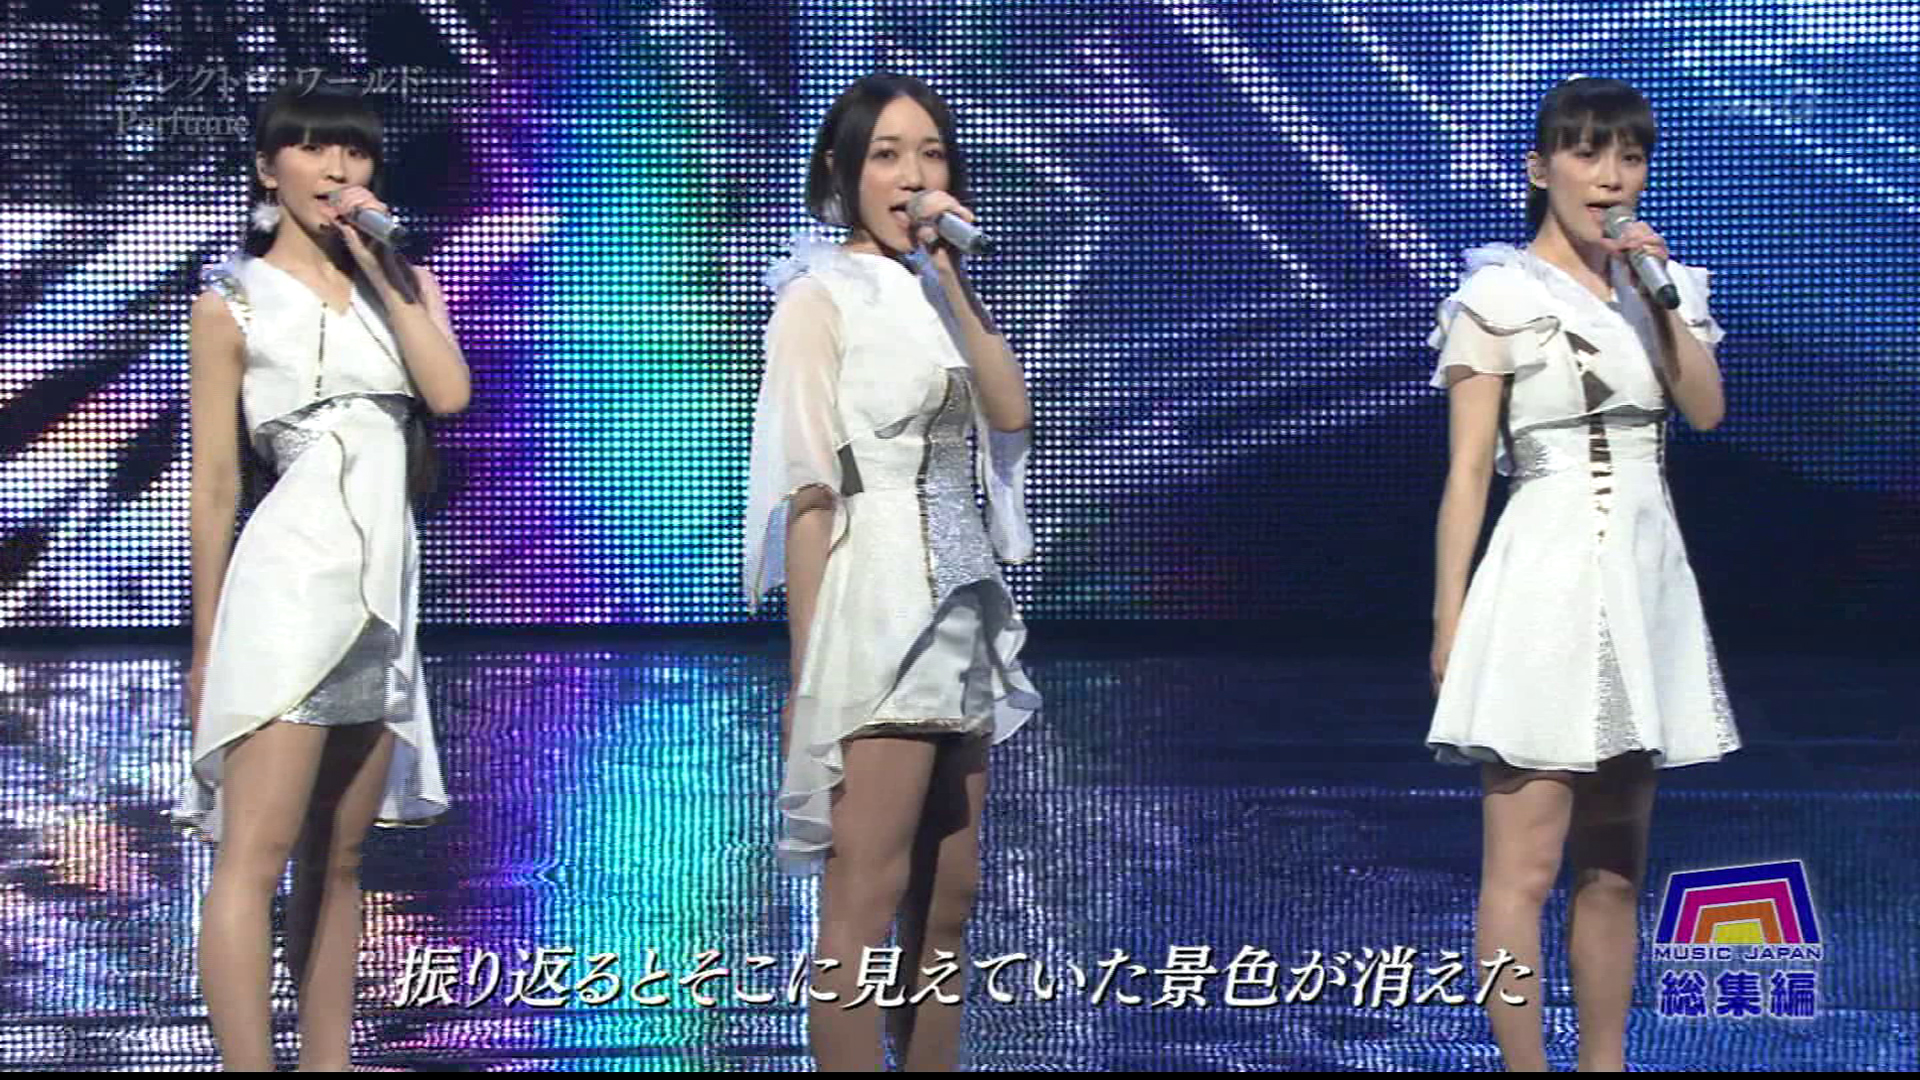 20170411.0446.1 Perfume - Electro World (Music Japan MJ Special Night 2016.04.04) (JPOP.ru).ts.jpg